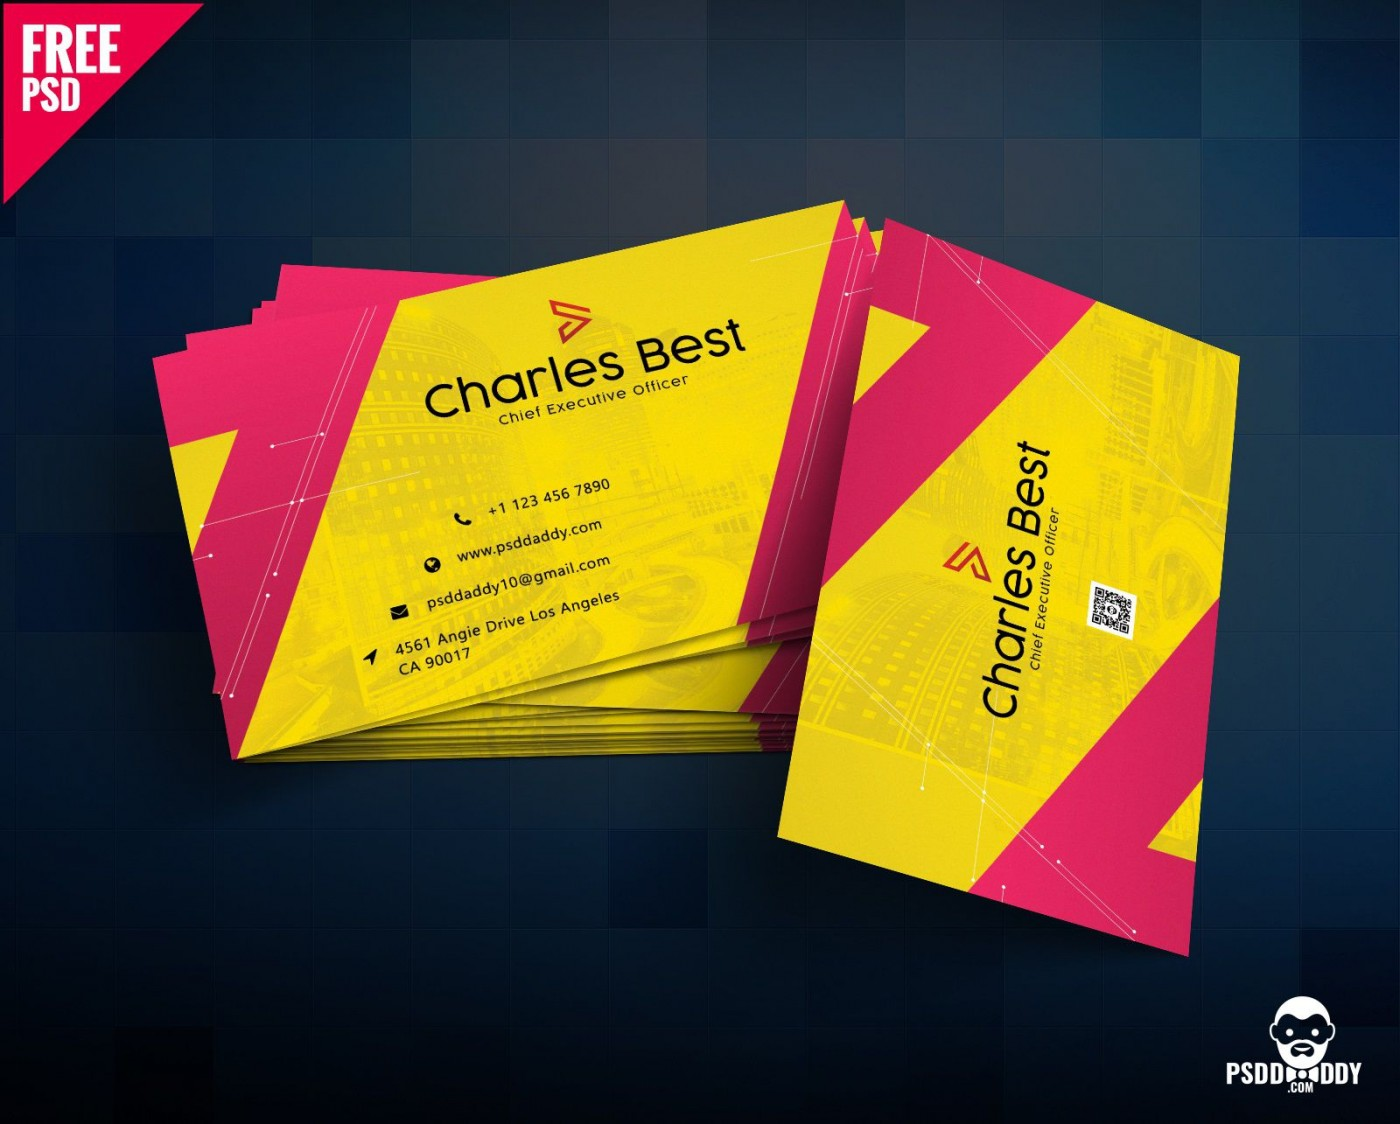 003 Beautiful Free Photoshop Busines Card Template Download Concept  Adobe Psd Visiting Design1400